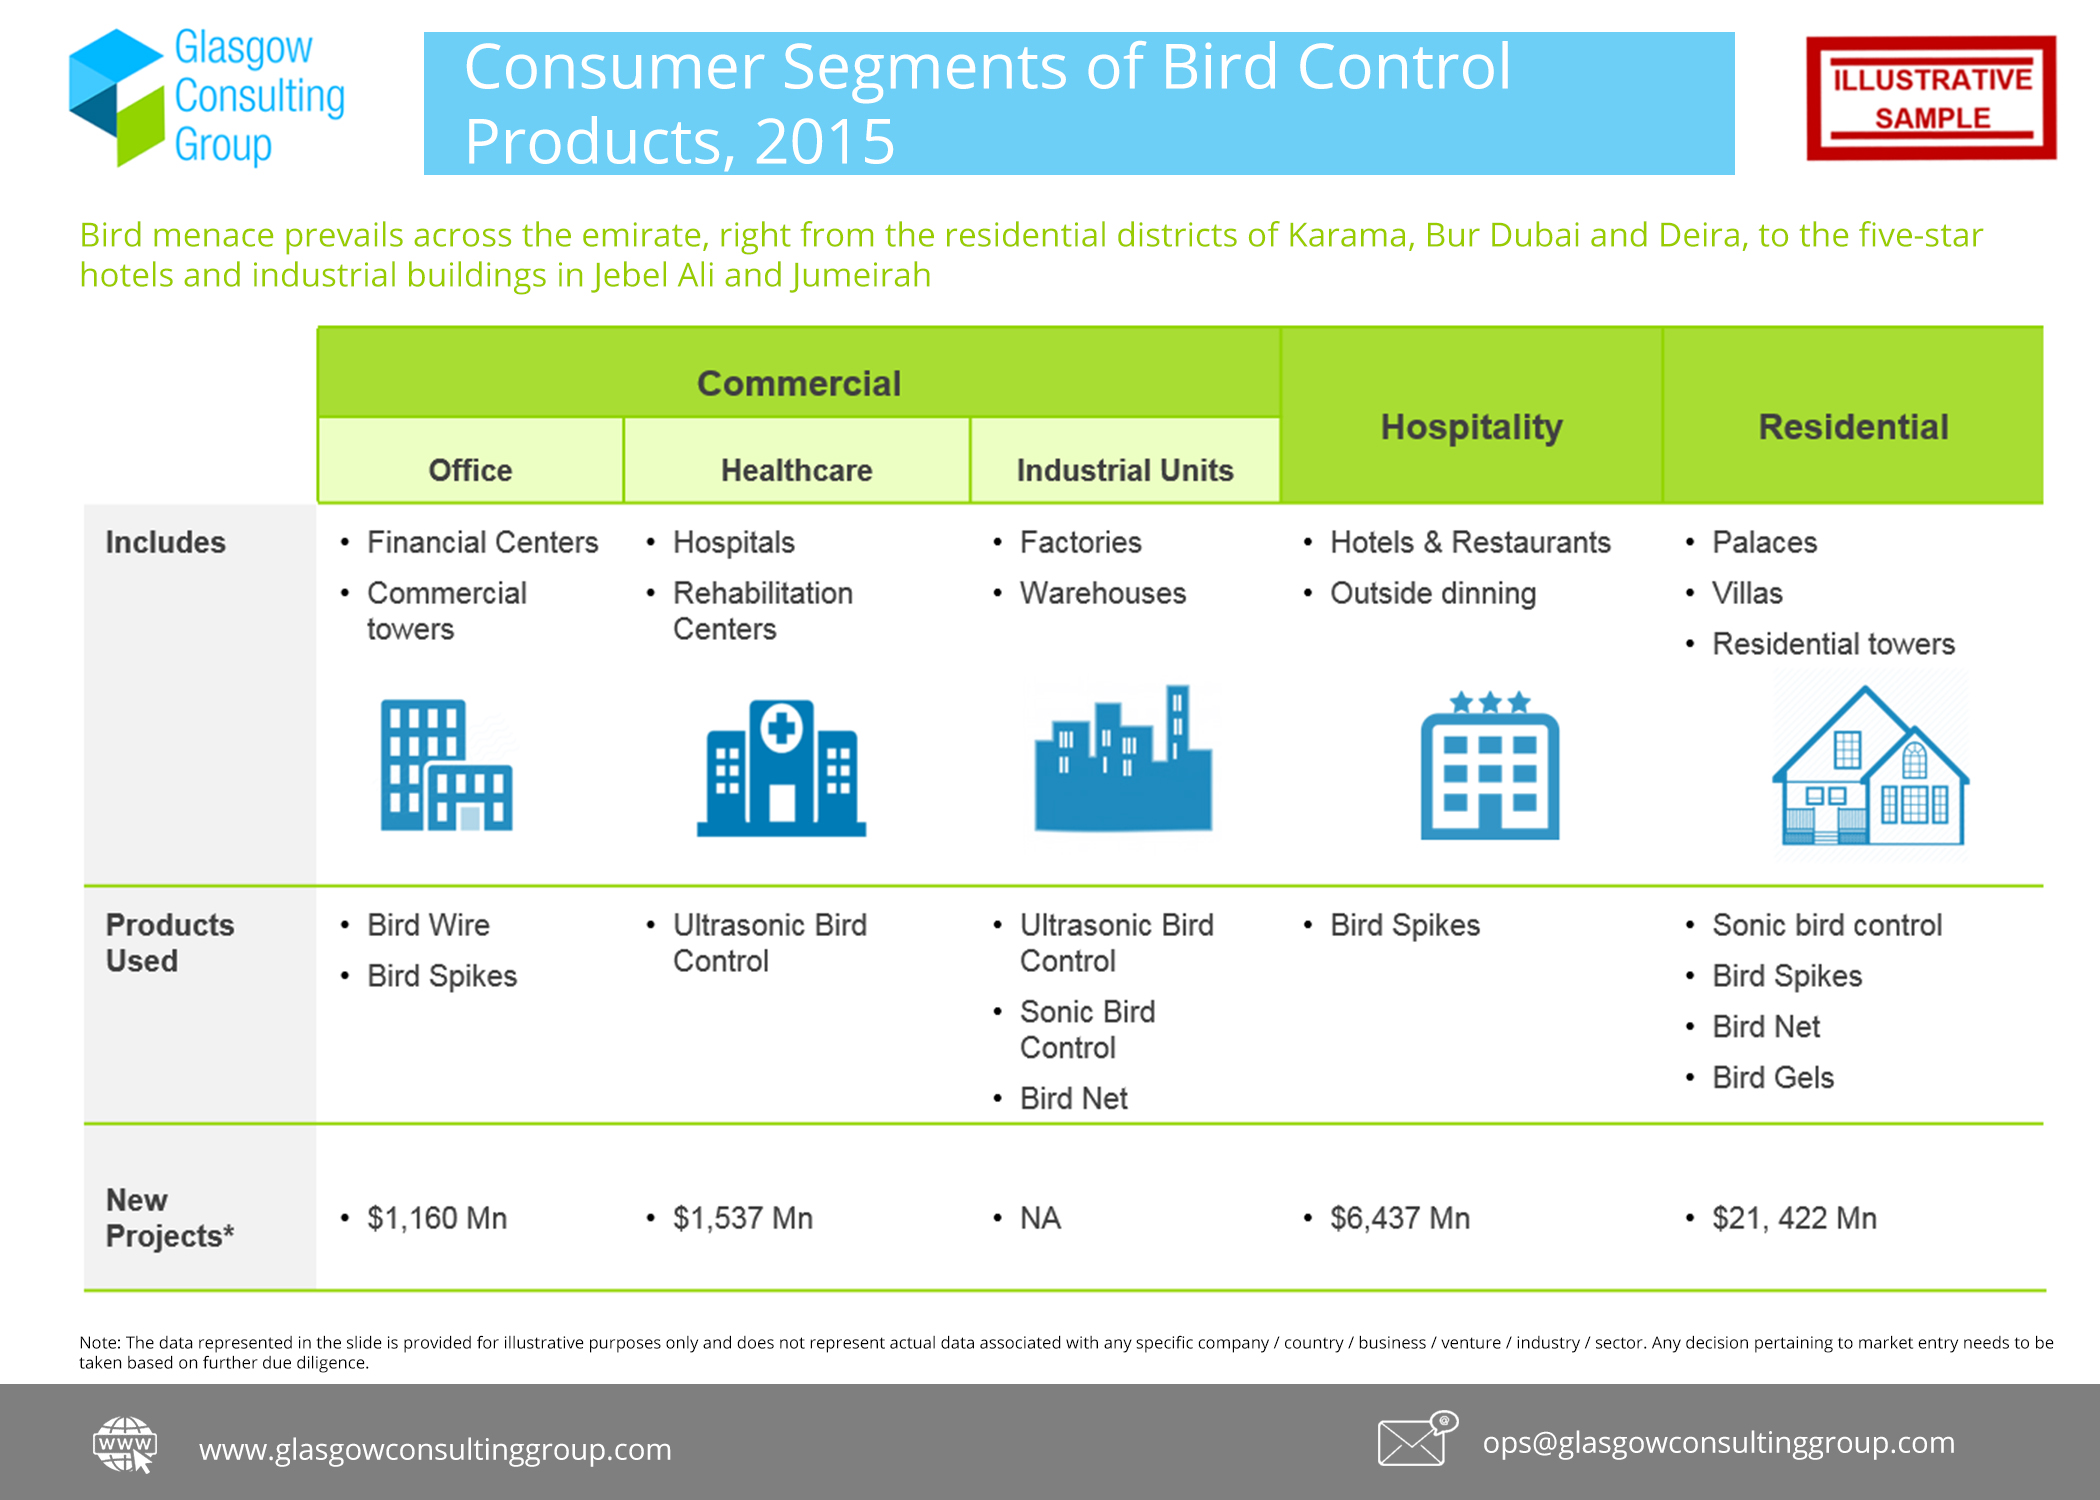 5 Consumer Segments of Bird Control Products, 2015